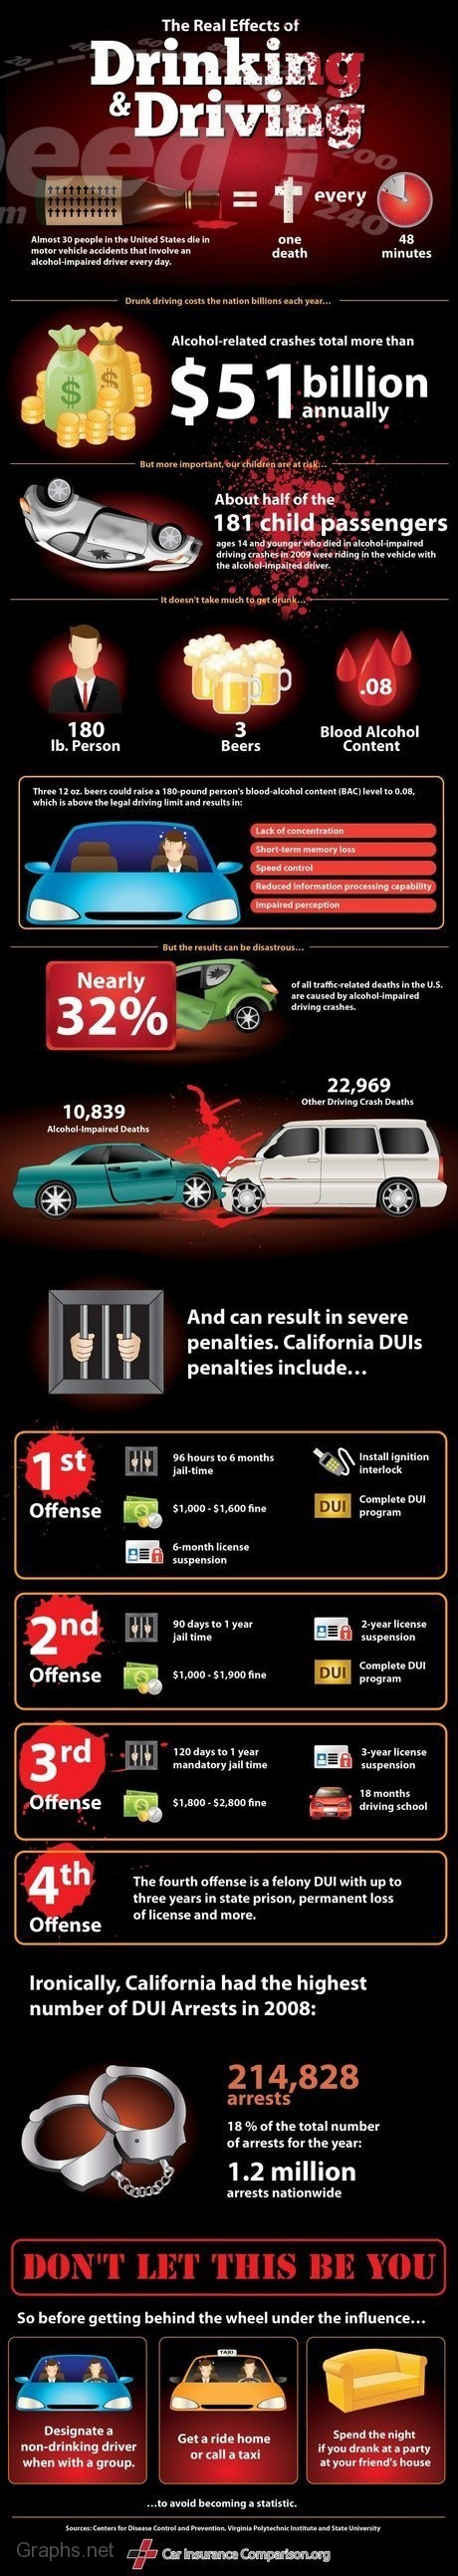 Drinking and Driving: Effects